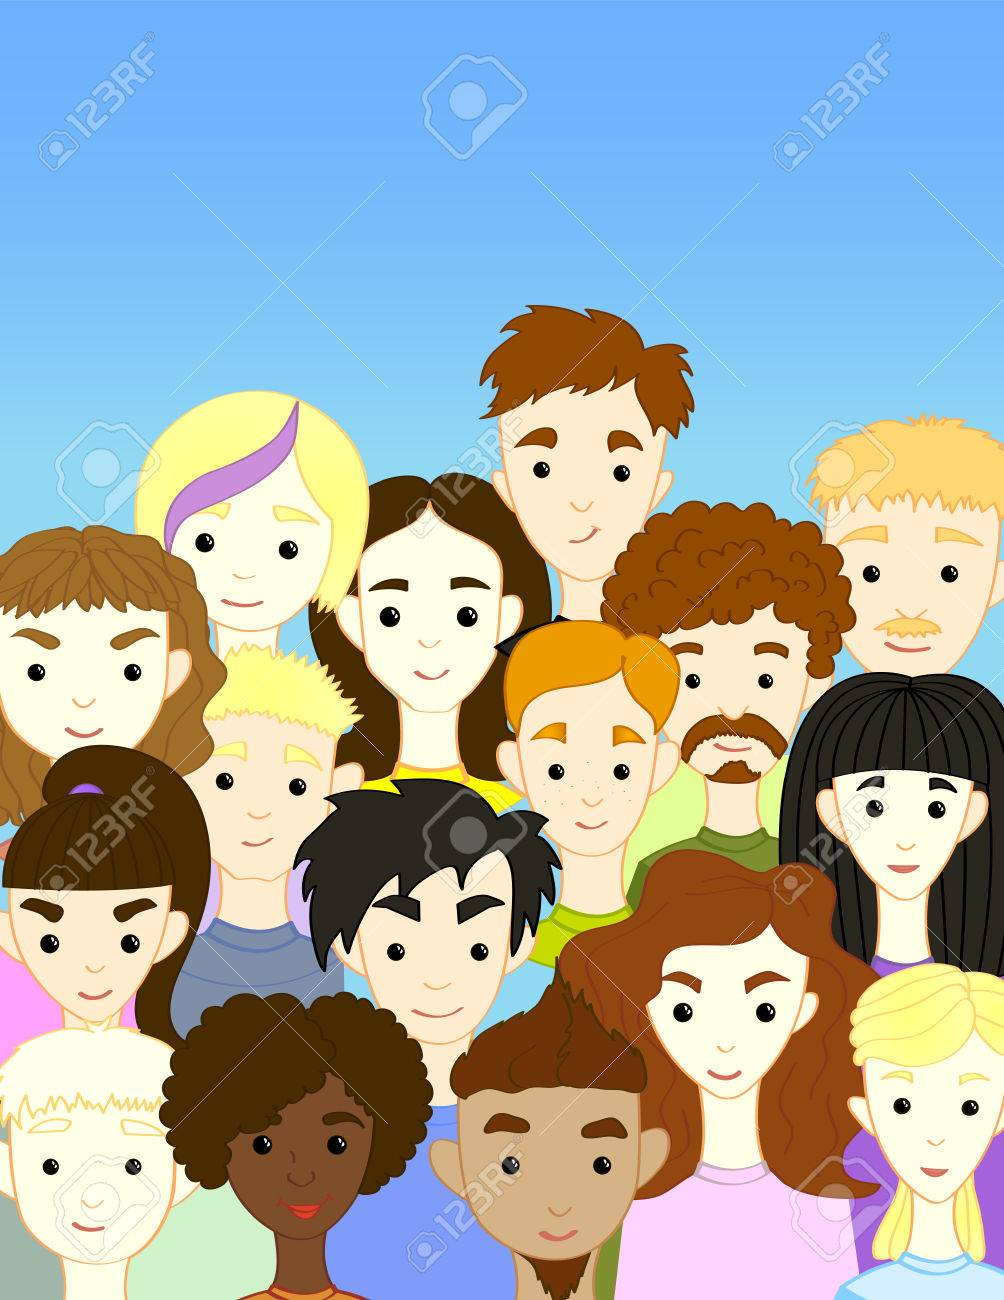 The Crowd Of International Different People Cartoon Characters